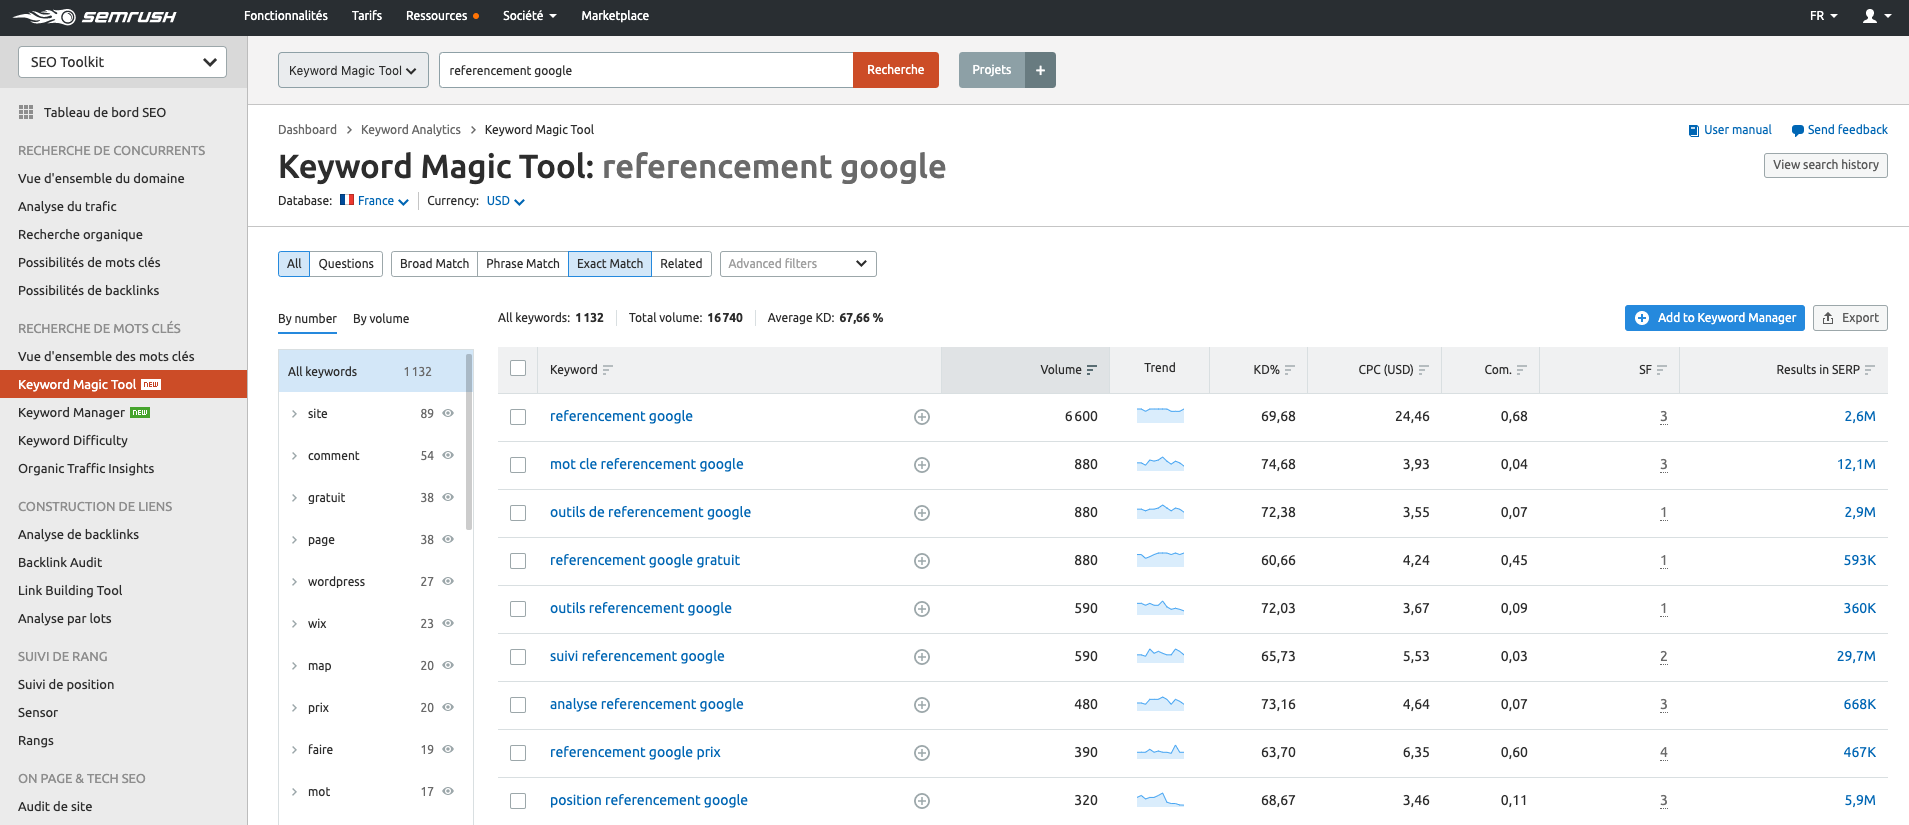 referencement-google_SEMrush_sujets_connexes